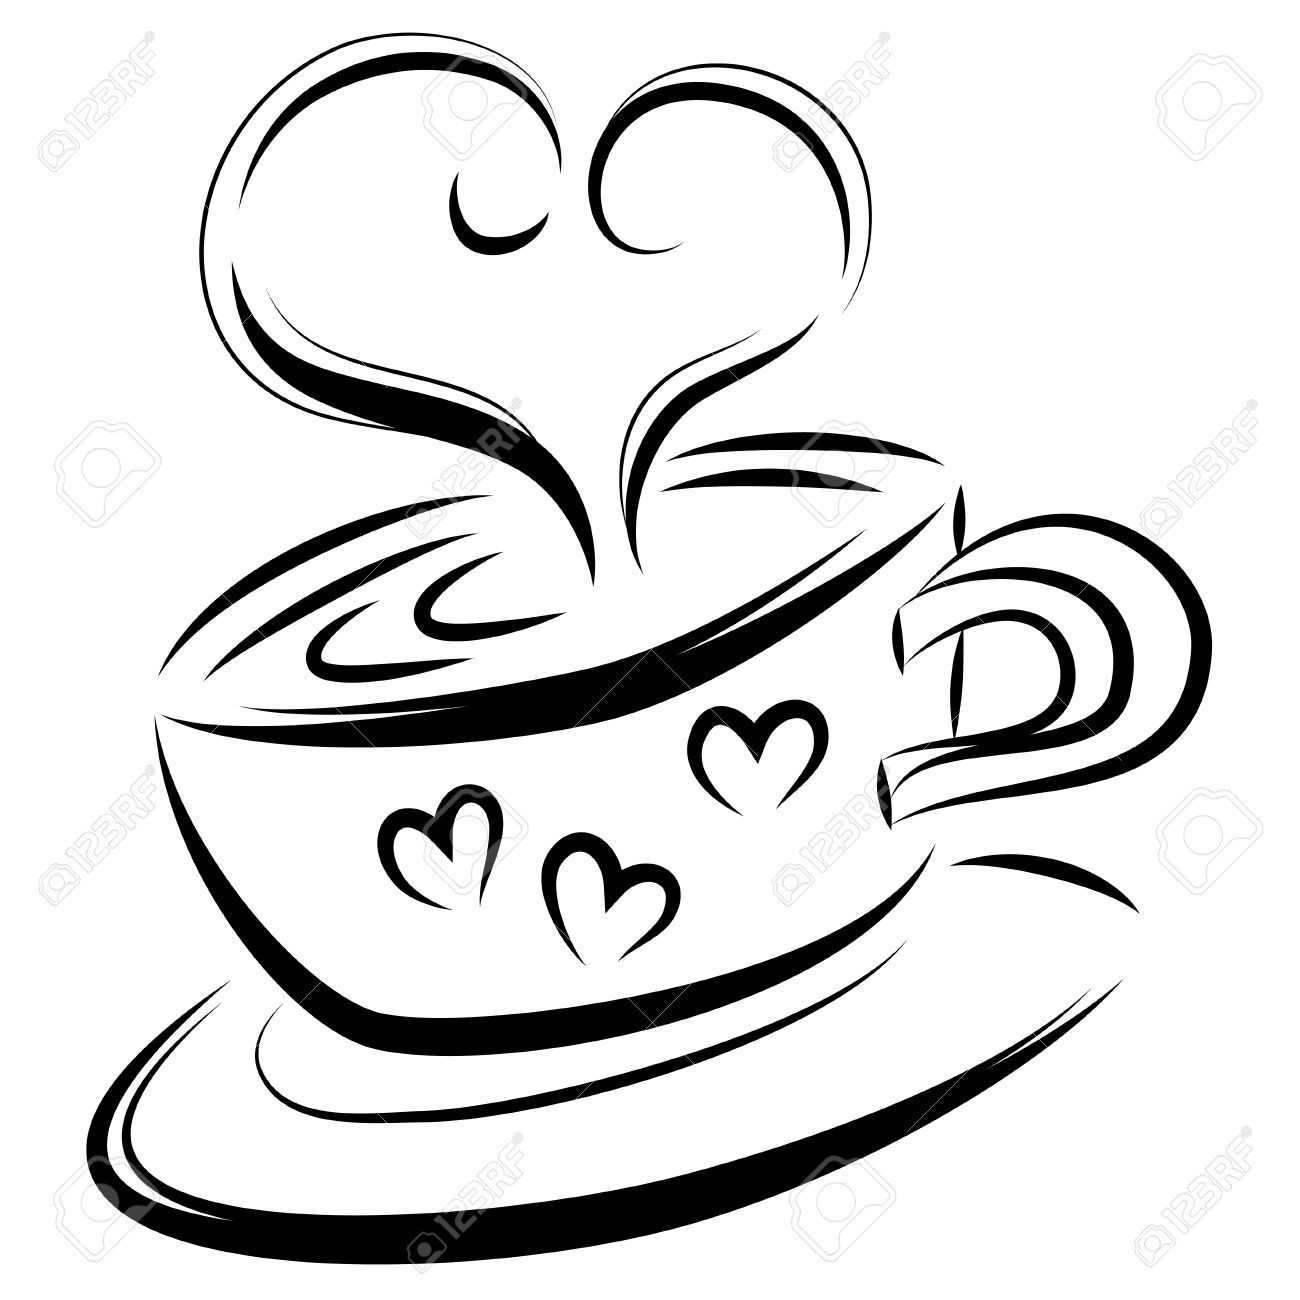 1300x1300 Love Coffee Line Art, Vector Illustration Royalty Free Cliparts